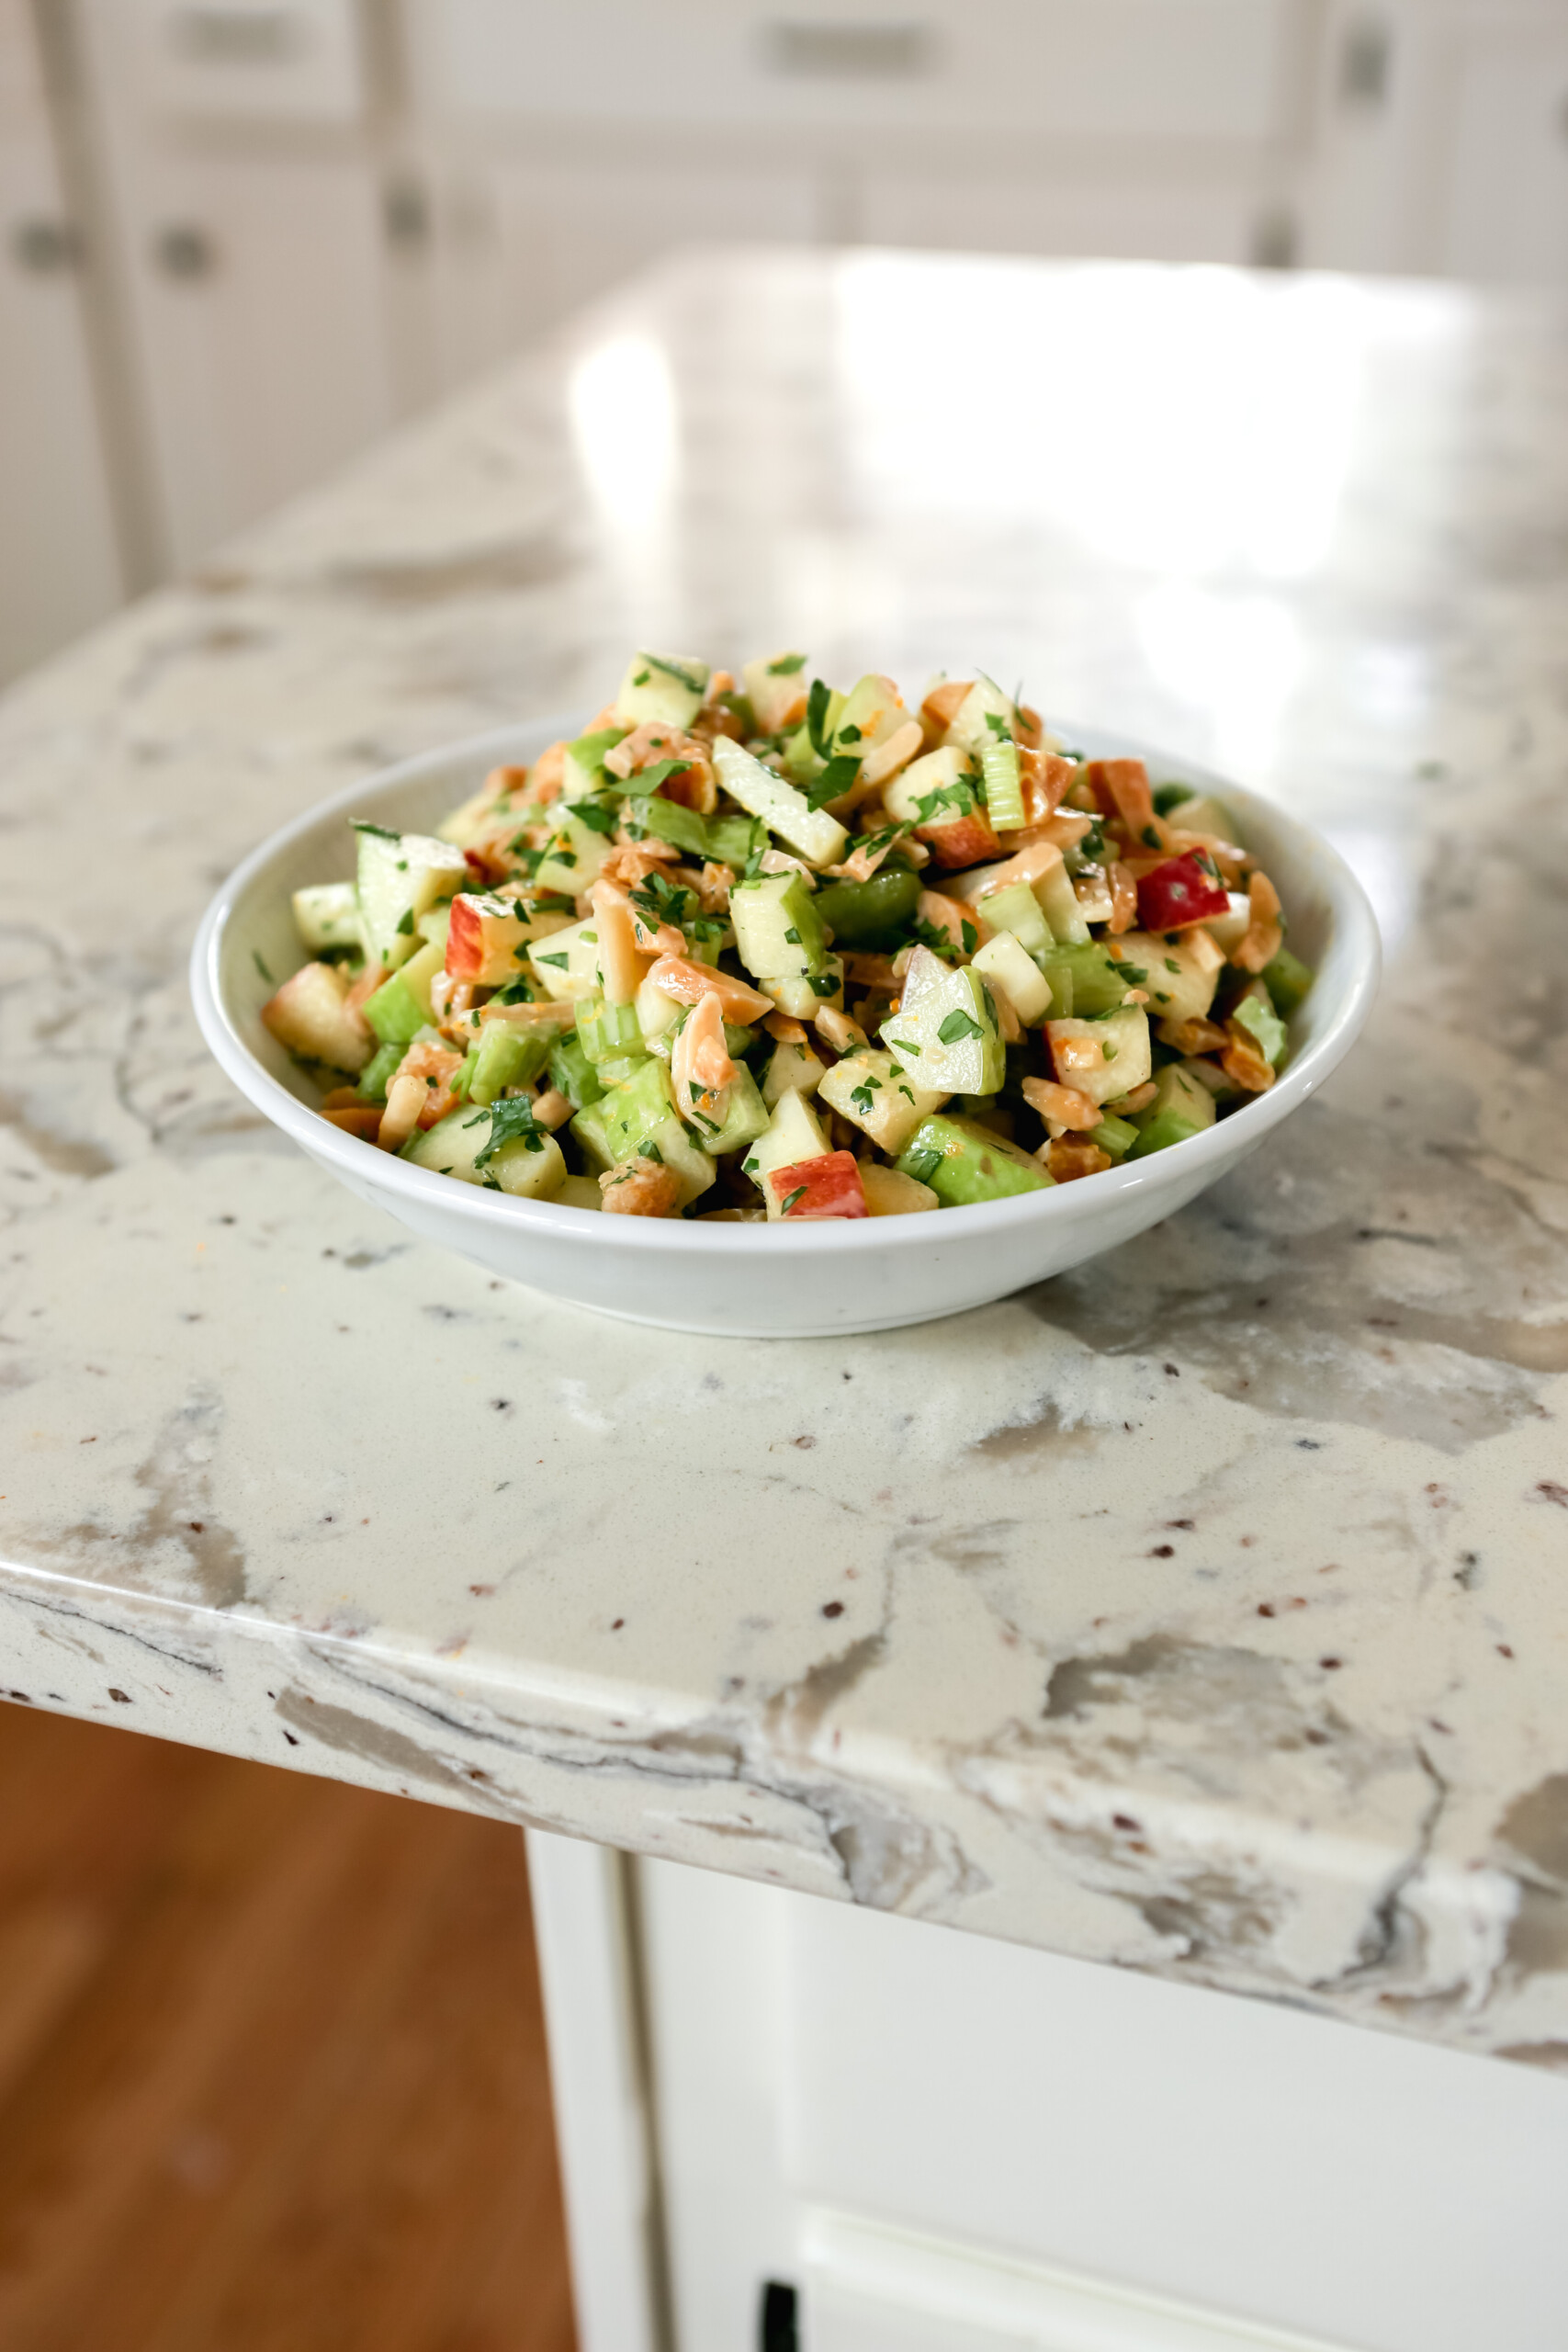 Photograph of diced apple salad in a white bowl on a cream-colored marble table.